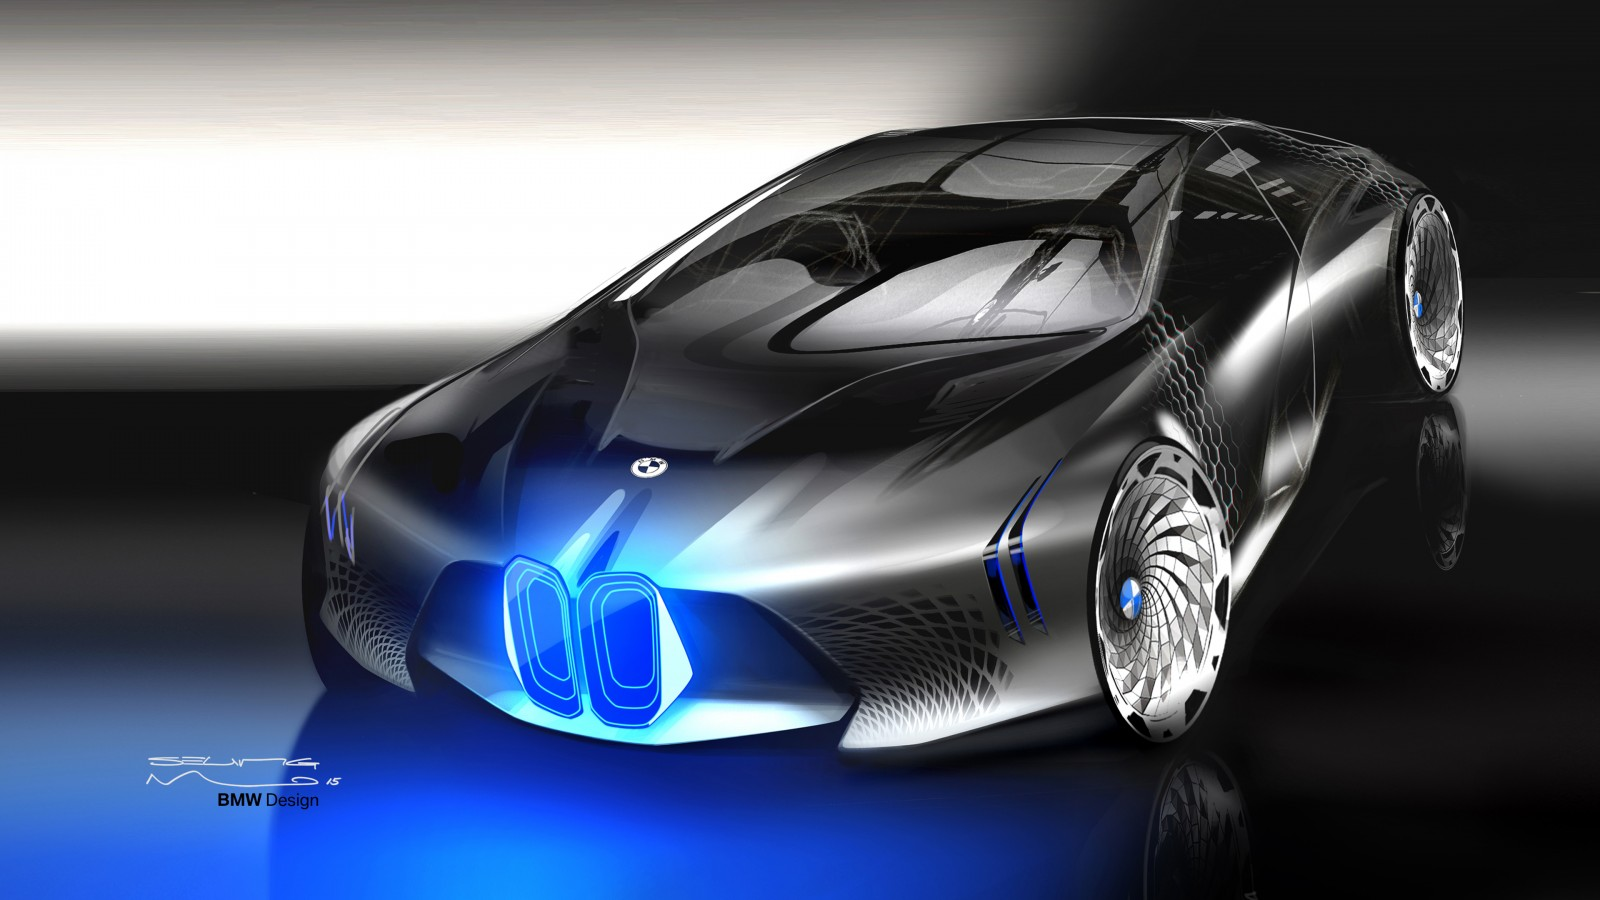 Bmw Vision Next 100 Concept Design Wallpaper Hd Car